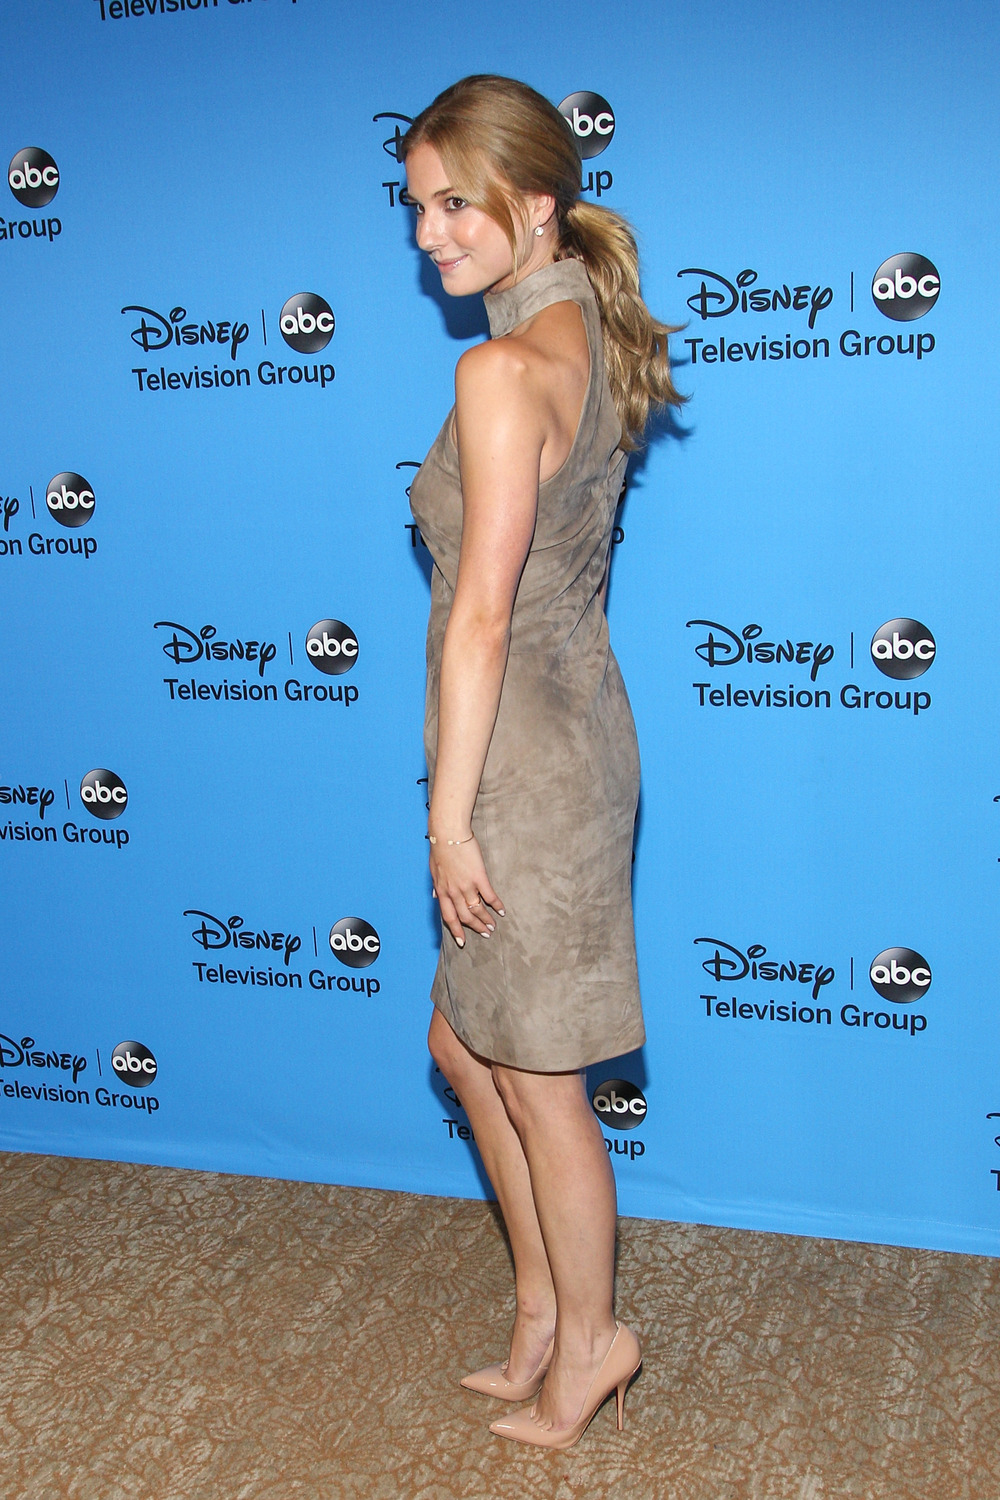 Emily VanCamp Slams Miley Cyrus and Justin Bieber — What's She Saying?